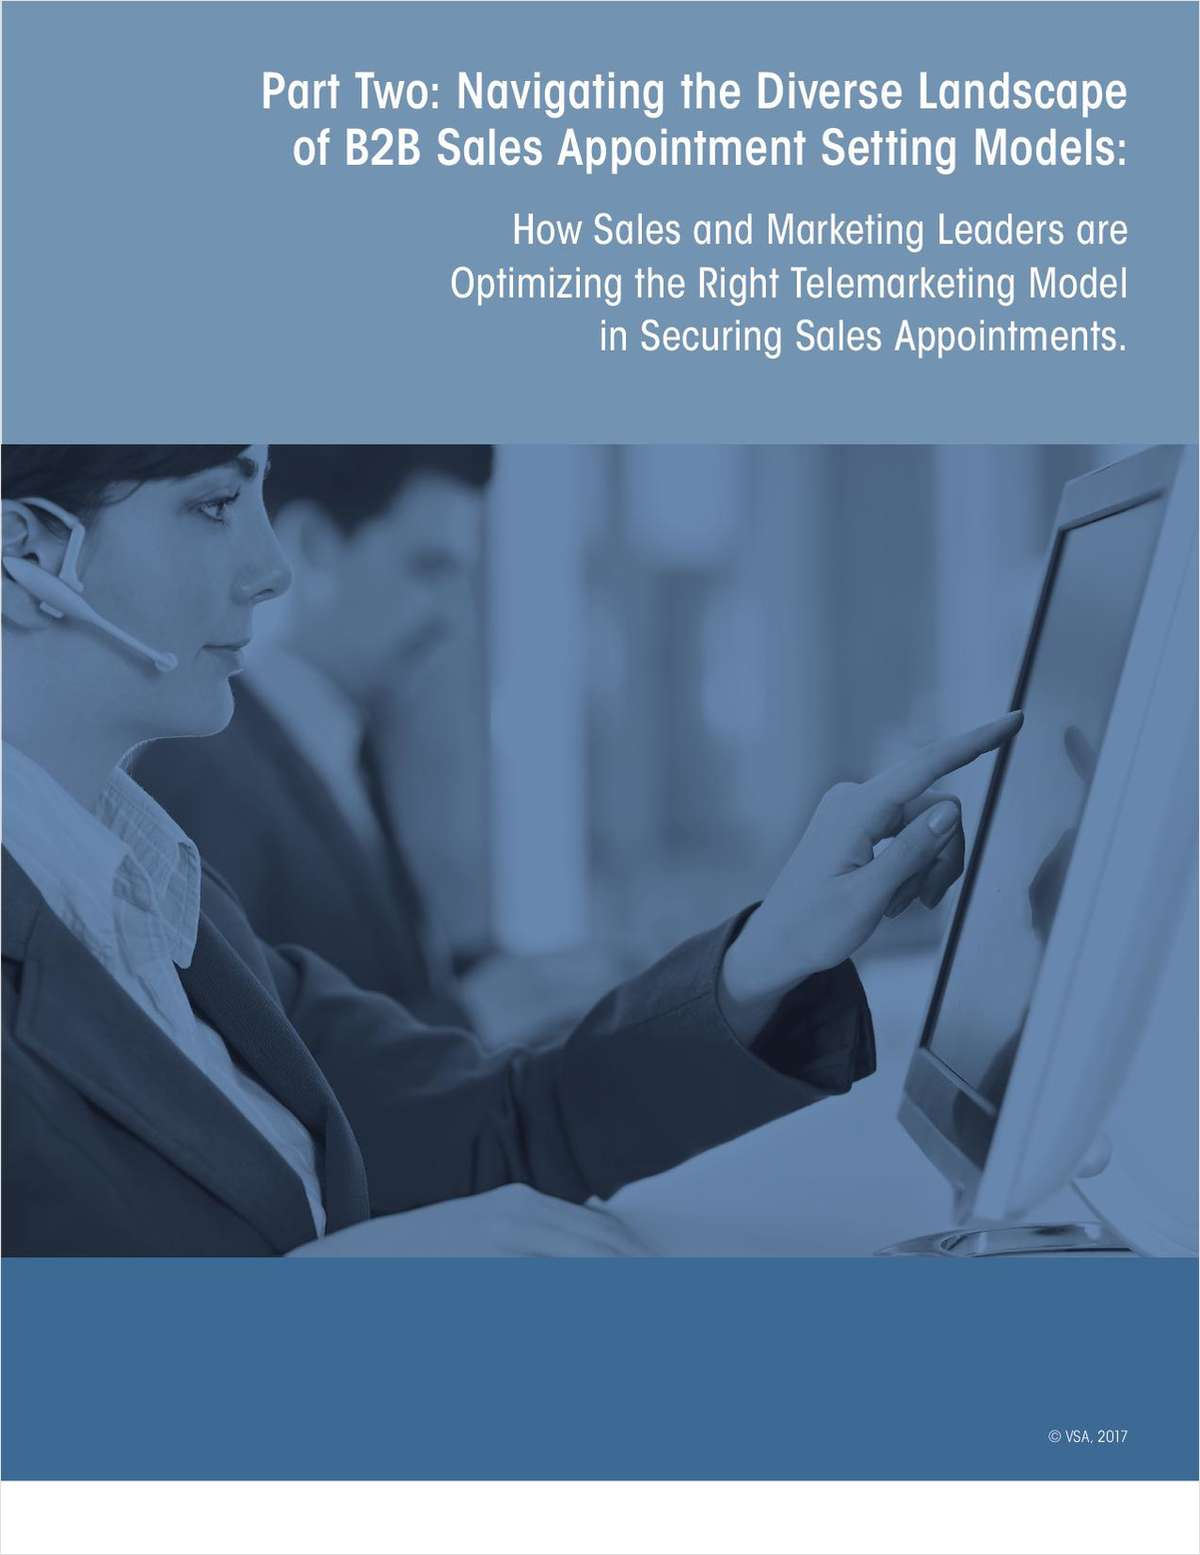 Part Two: Navigating the Diverse Landscape of B2B Sales Appointment Setting Models: